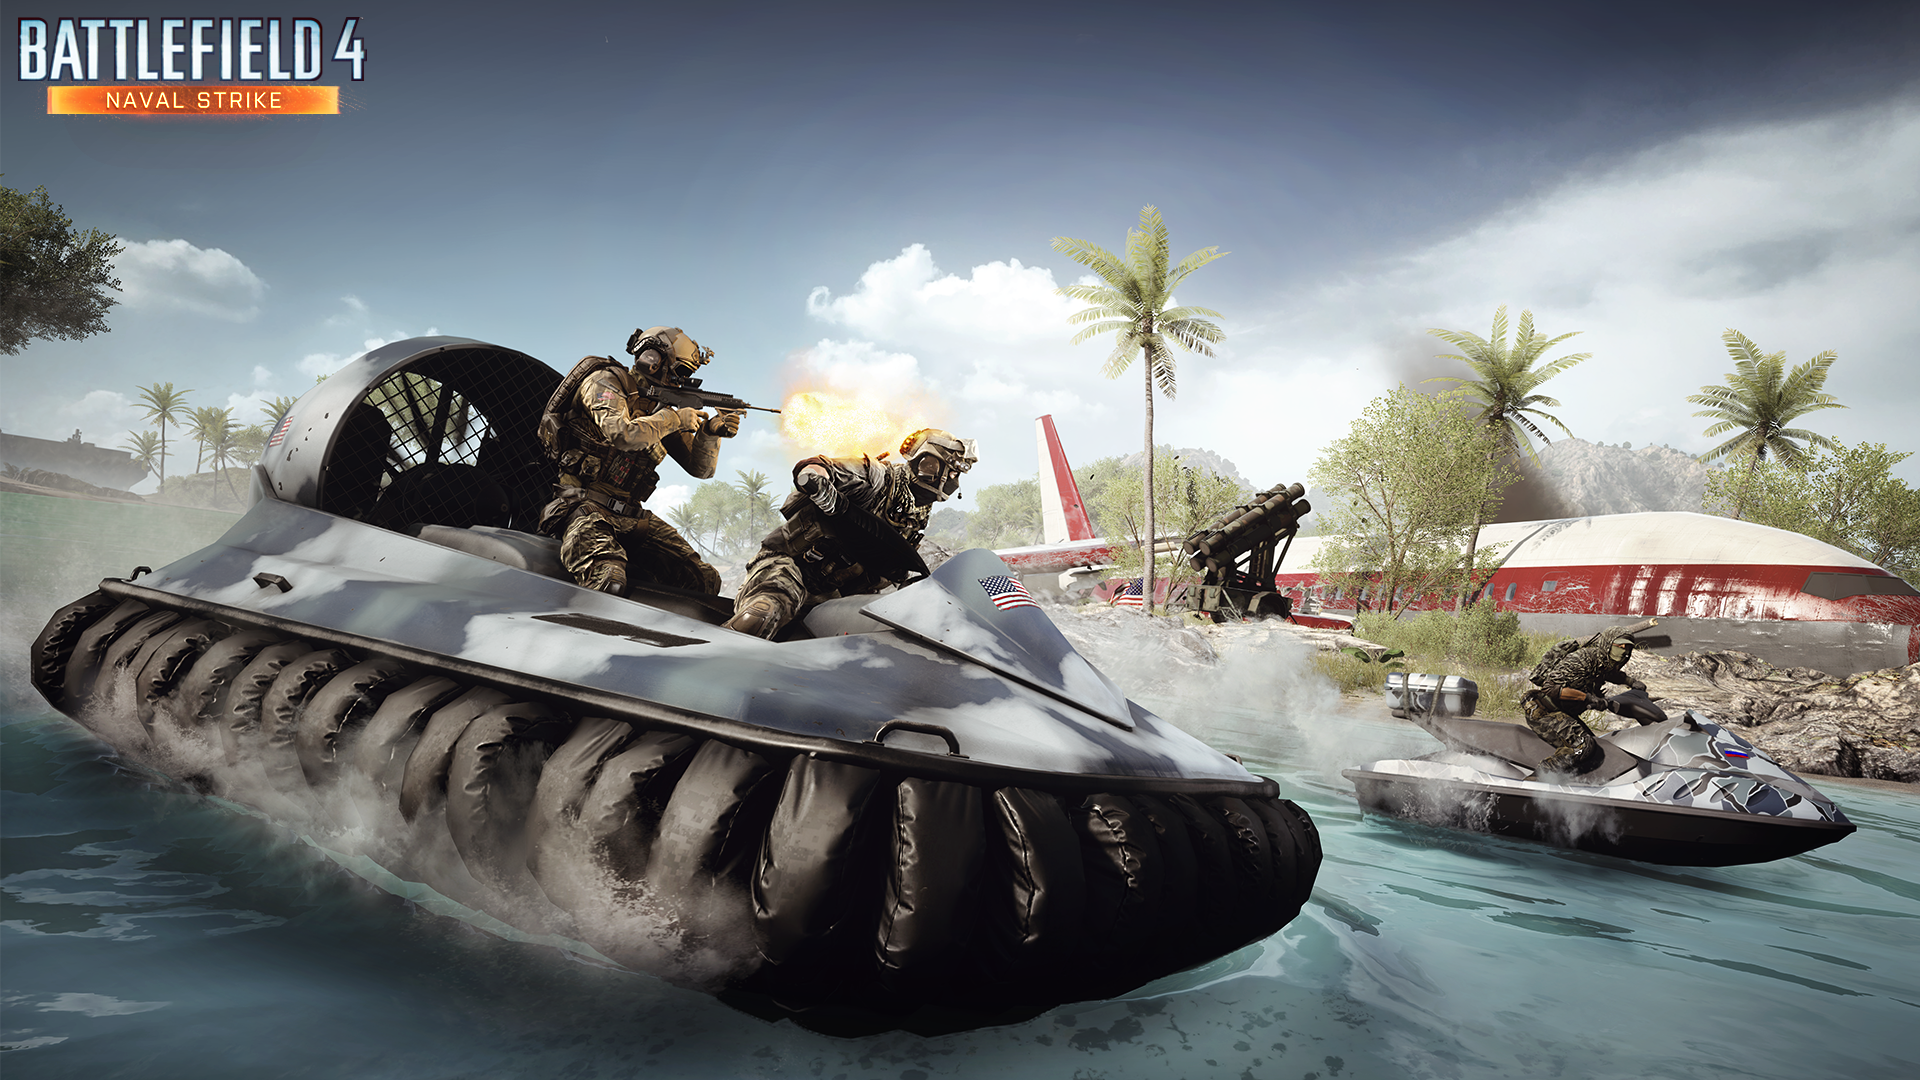 Battlefield 4 Naval Strike expansion delayed for PC